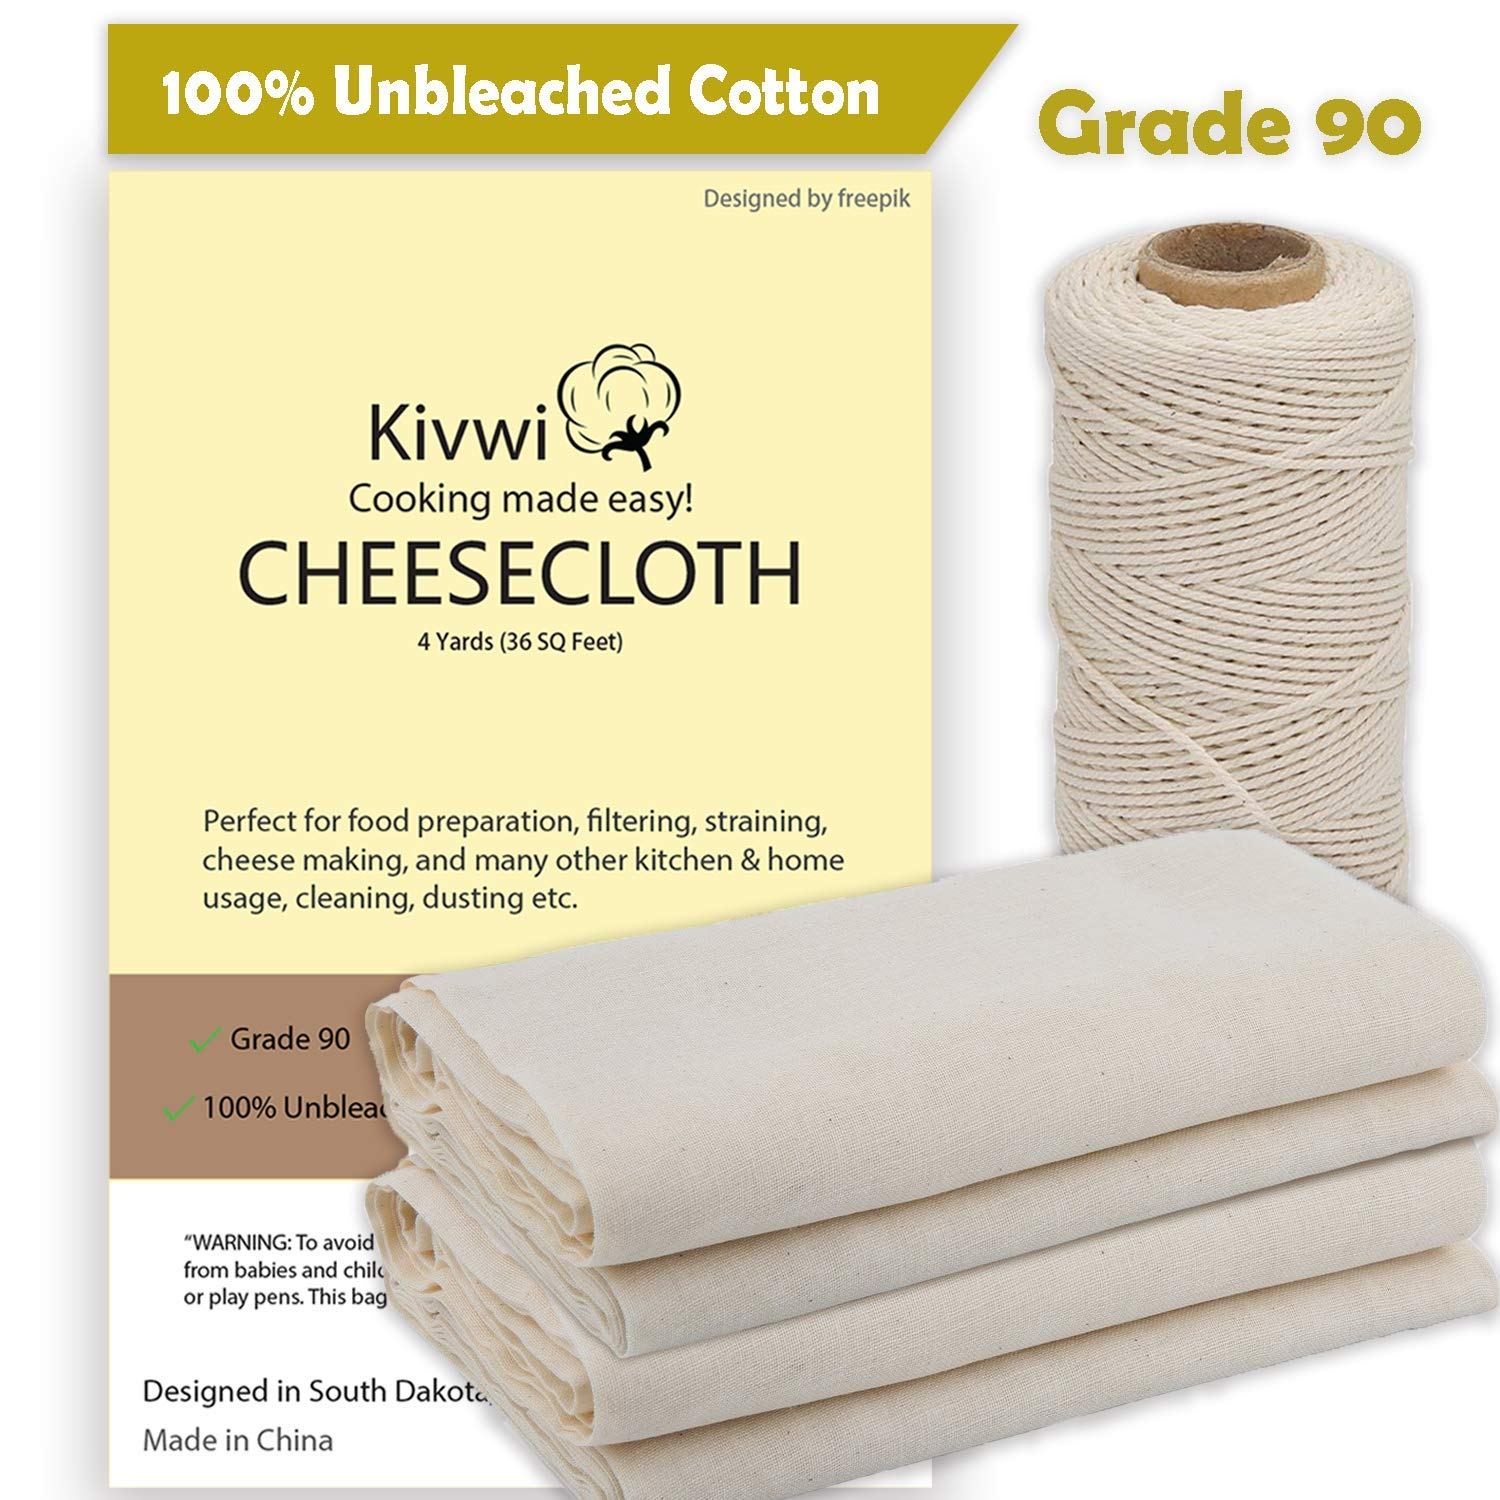 Kivwi Cheesecloth, Grade 90, 36 Sq Feet, Reusable, 100% Unbleached Cotton Fabric, Ultra Fine Cheesecloth for Cooking - Nut Milk Bag, Strainer, Filter (Grade 90-4 Yards)